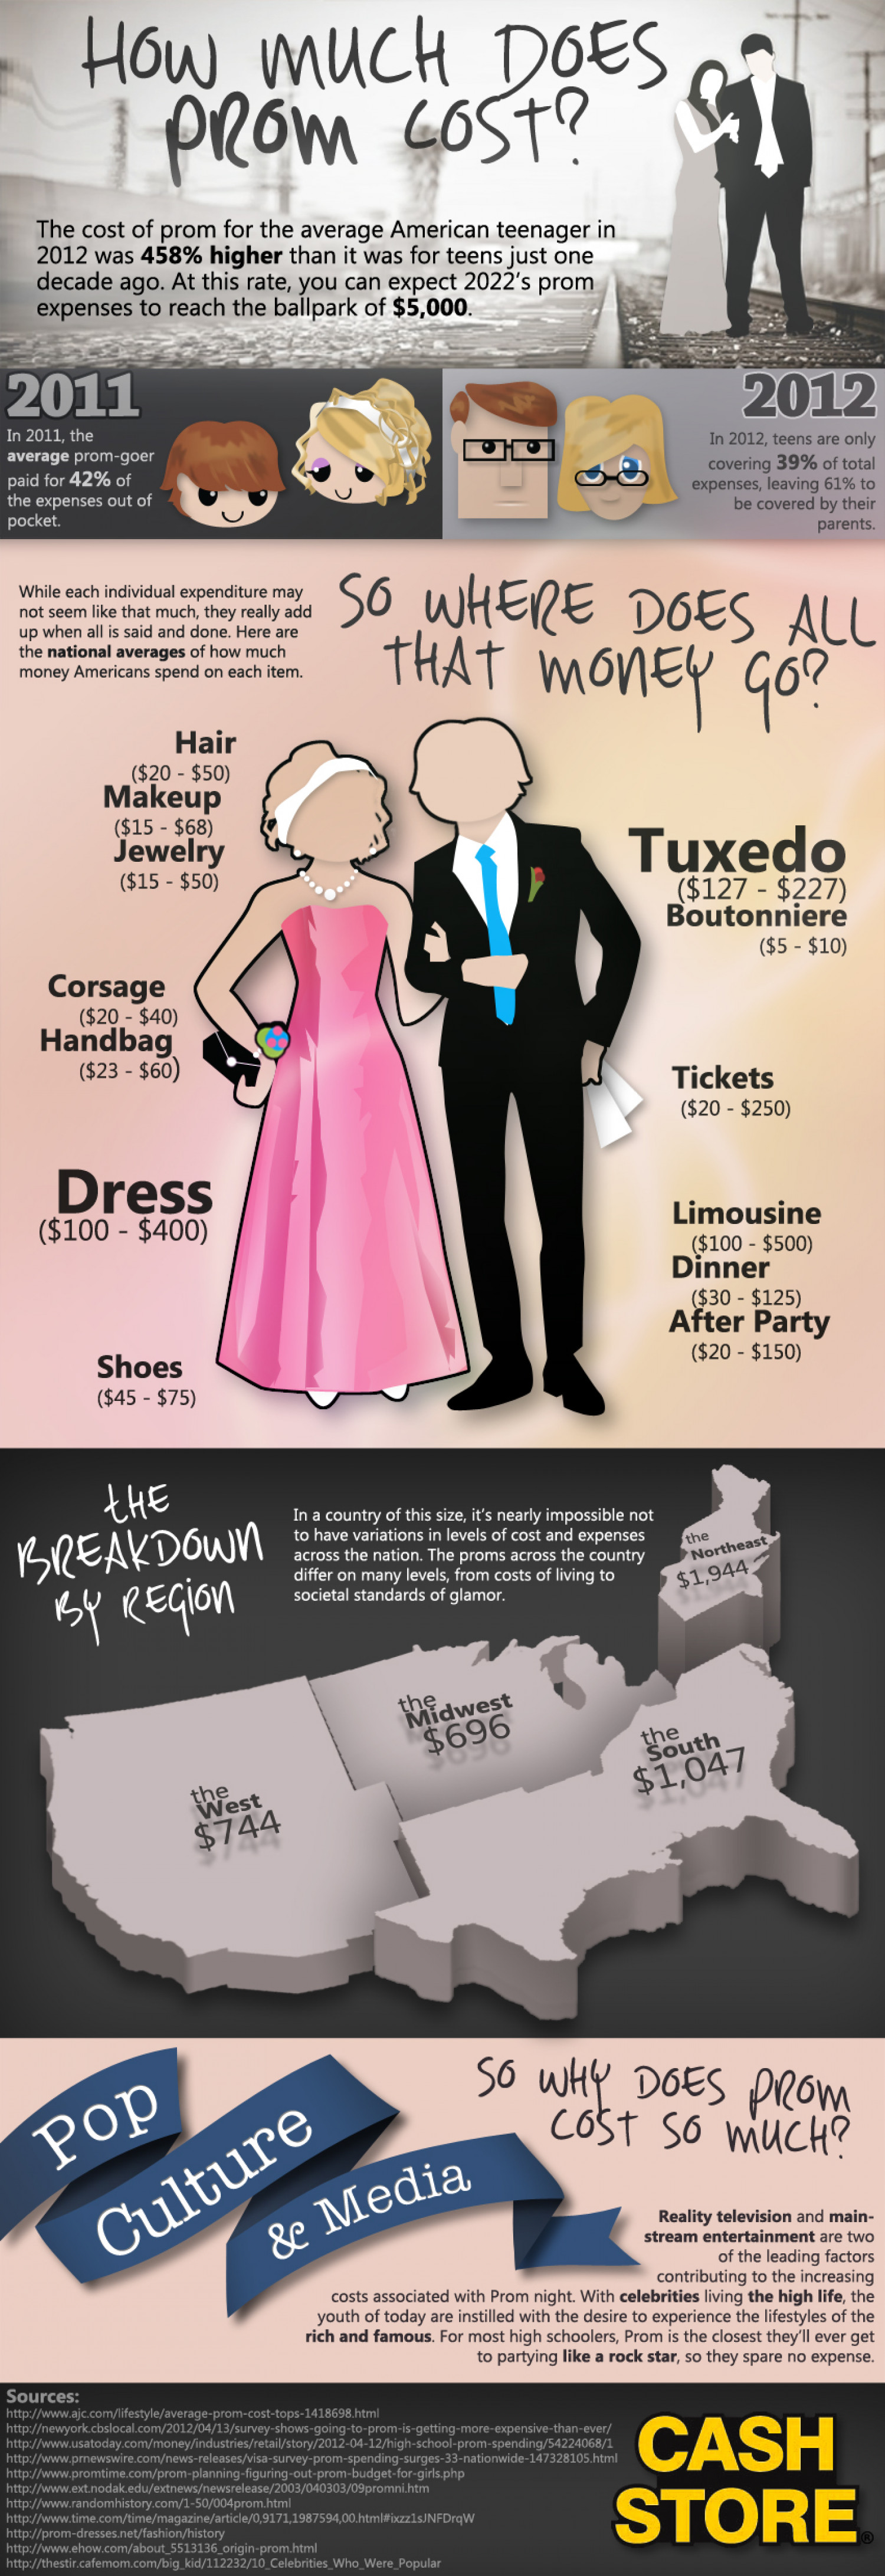 How Much Does Prom Cost Throughout America? Infographic